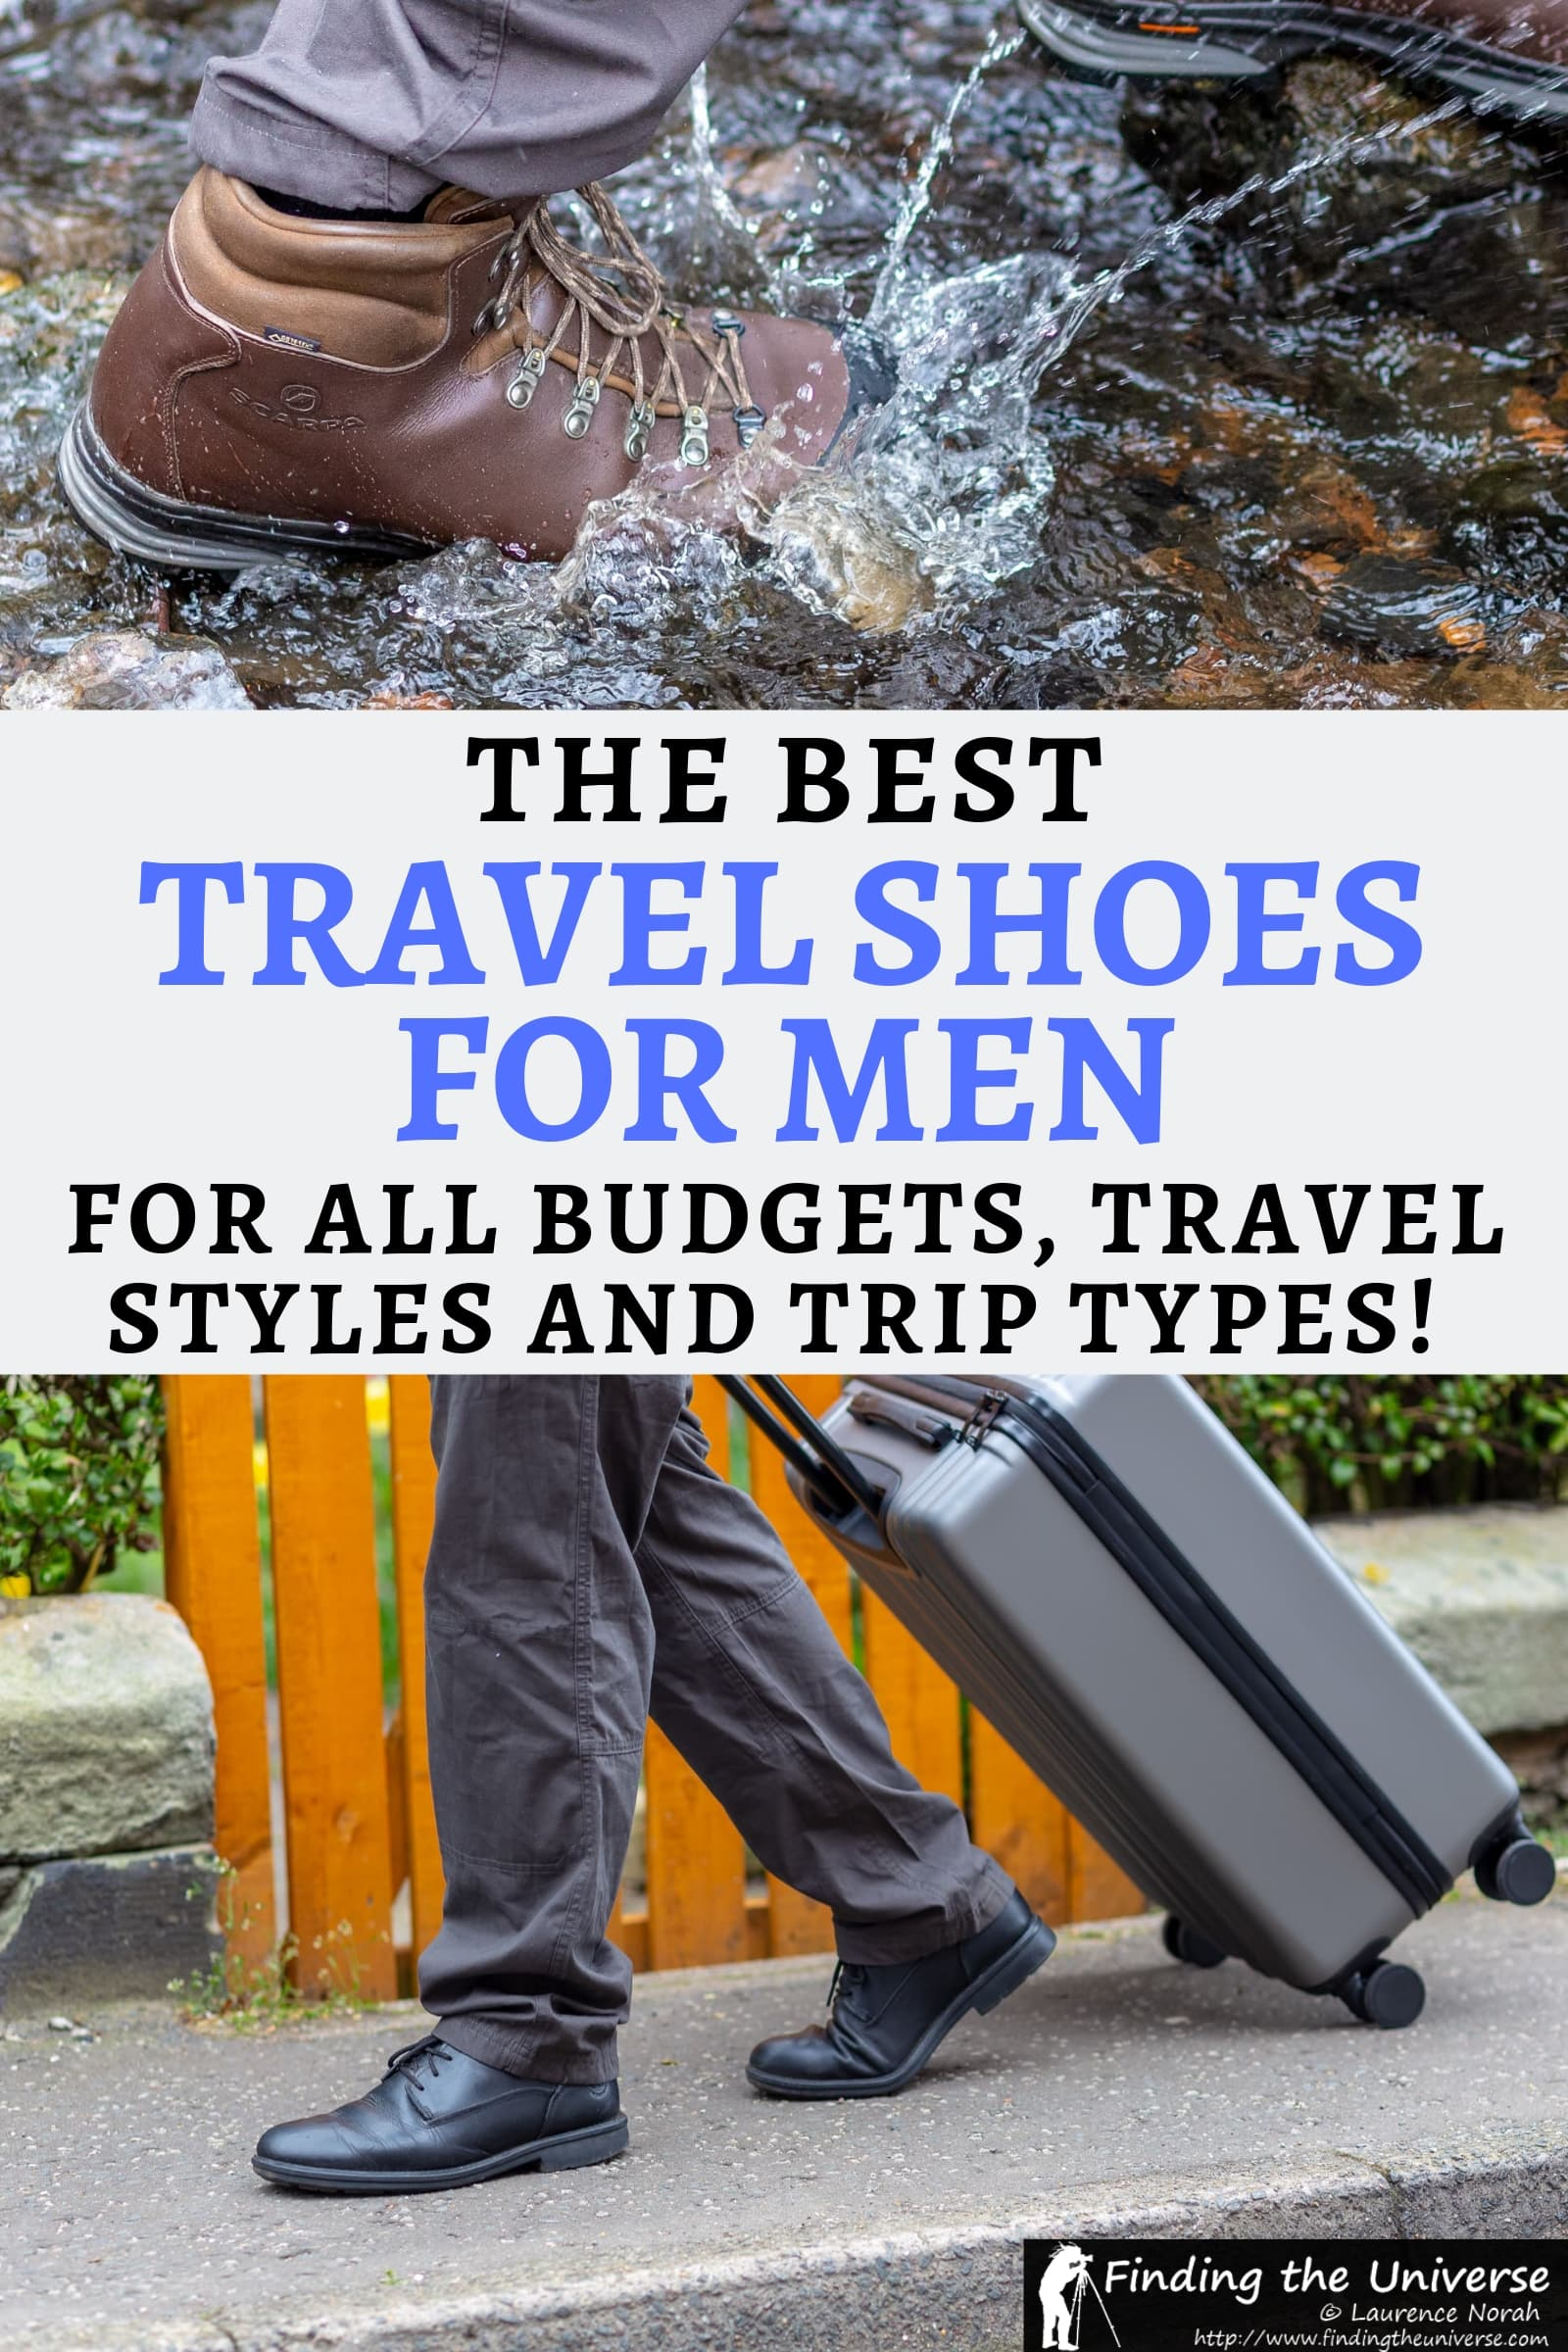 A detailed guide to the best travel shoes for men. Covers a wide range of shoe types, including hiking shoes, dress shoes, sandals, sports shoes and more!